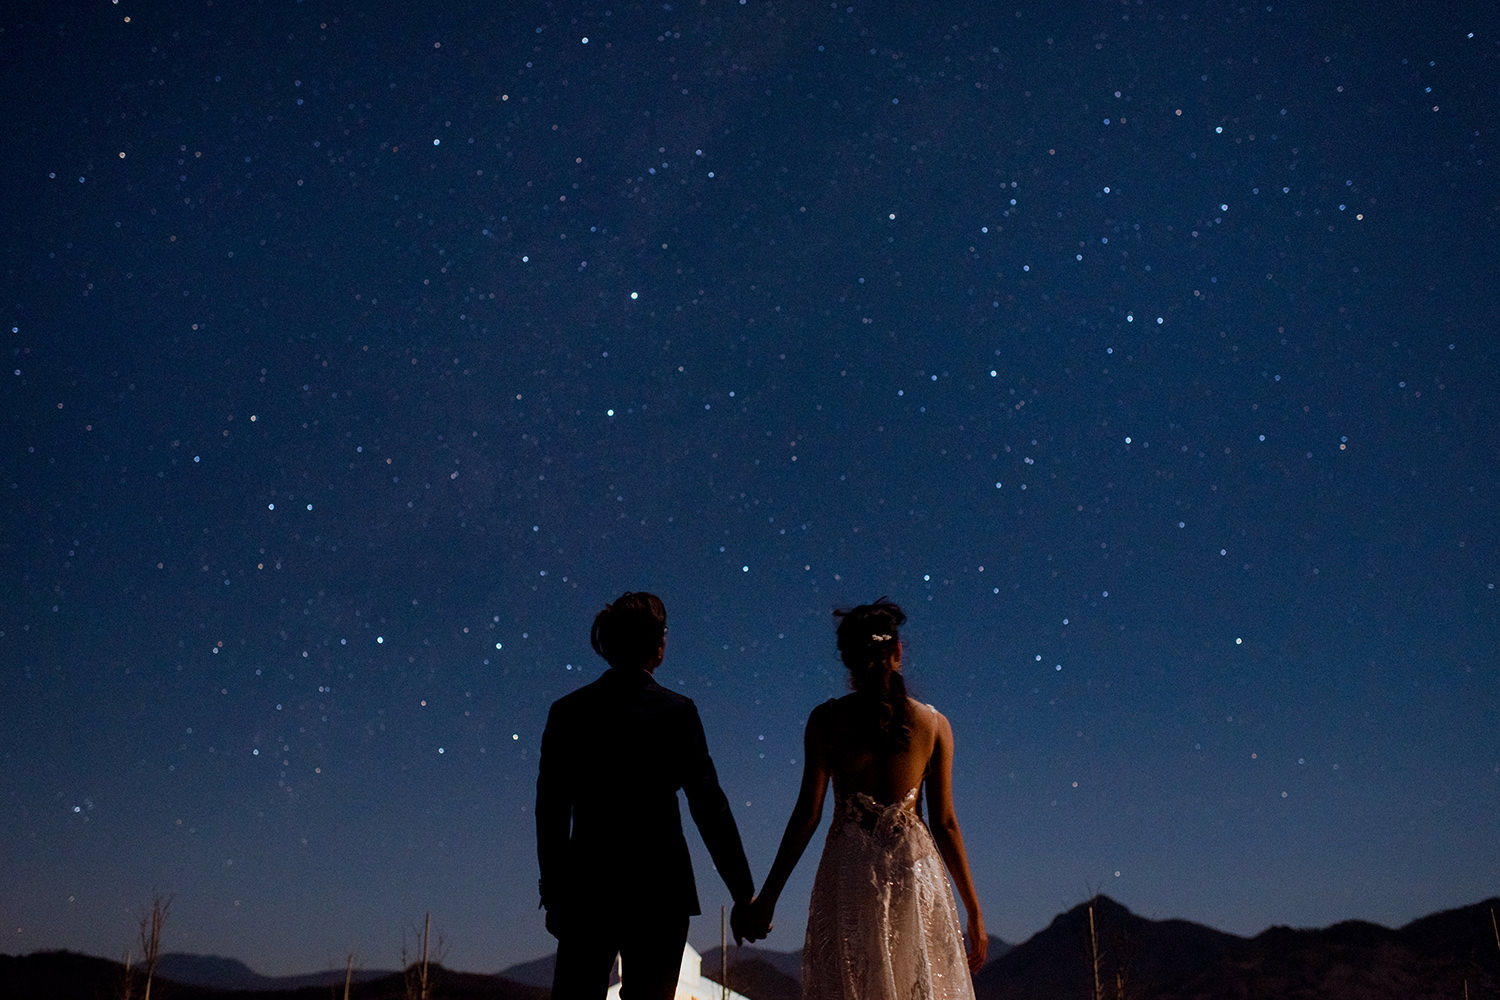 Newly married couple hold hands as they look at the starry night sky